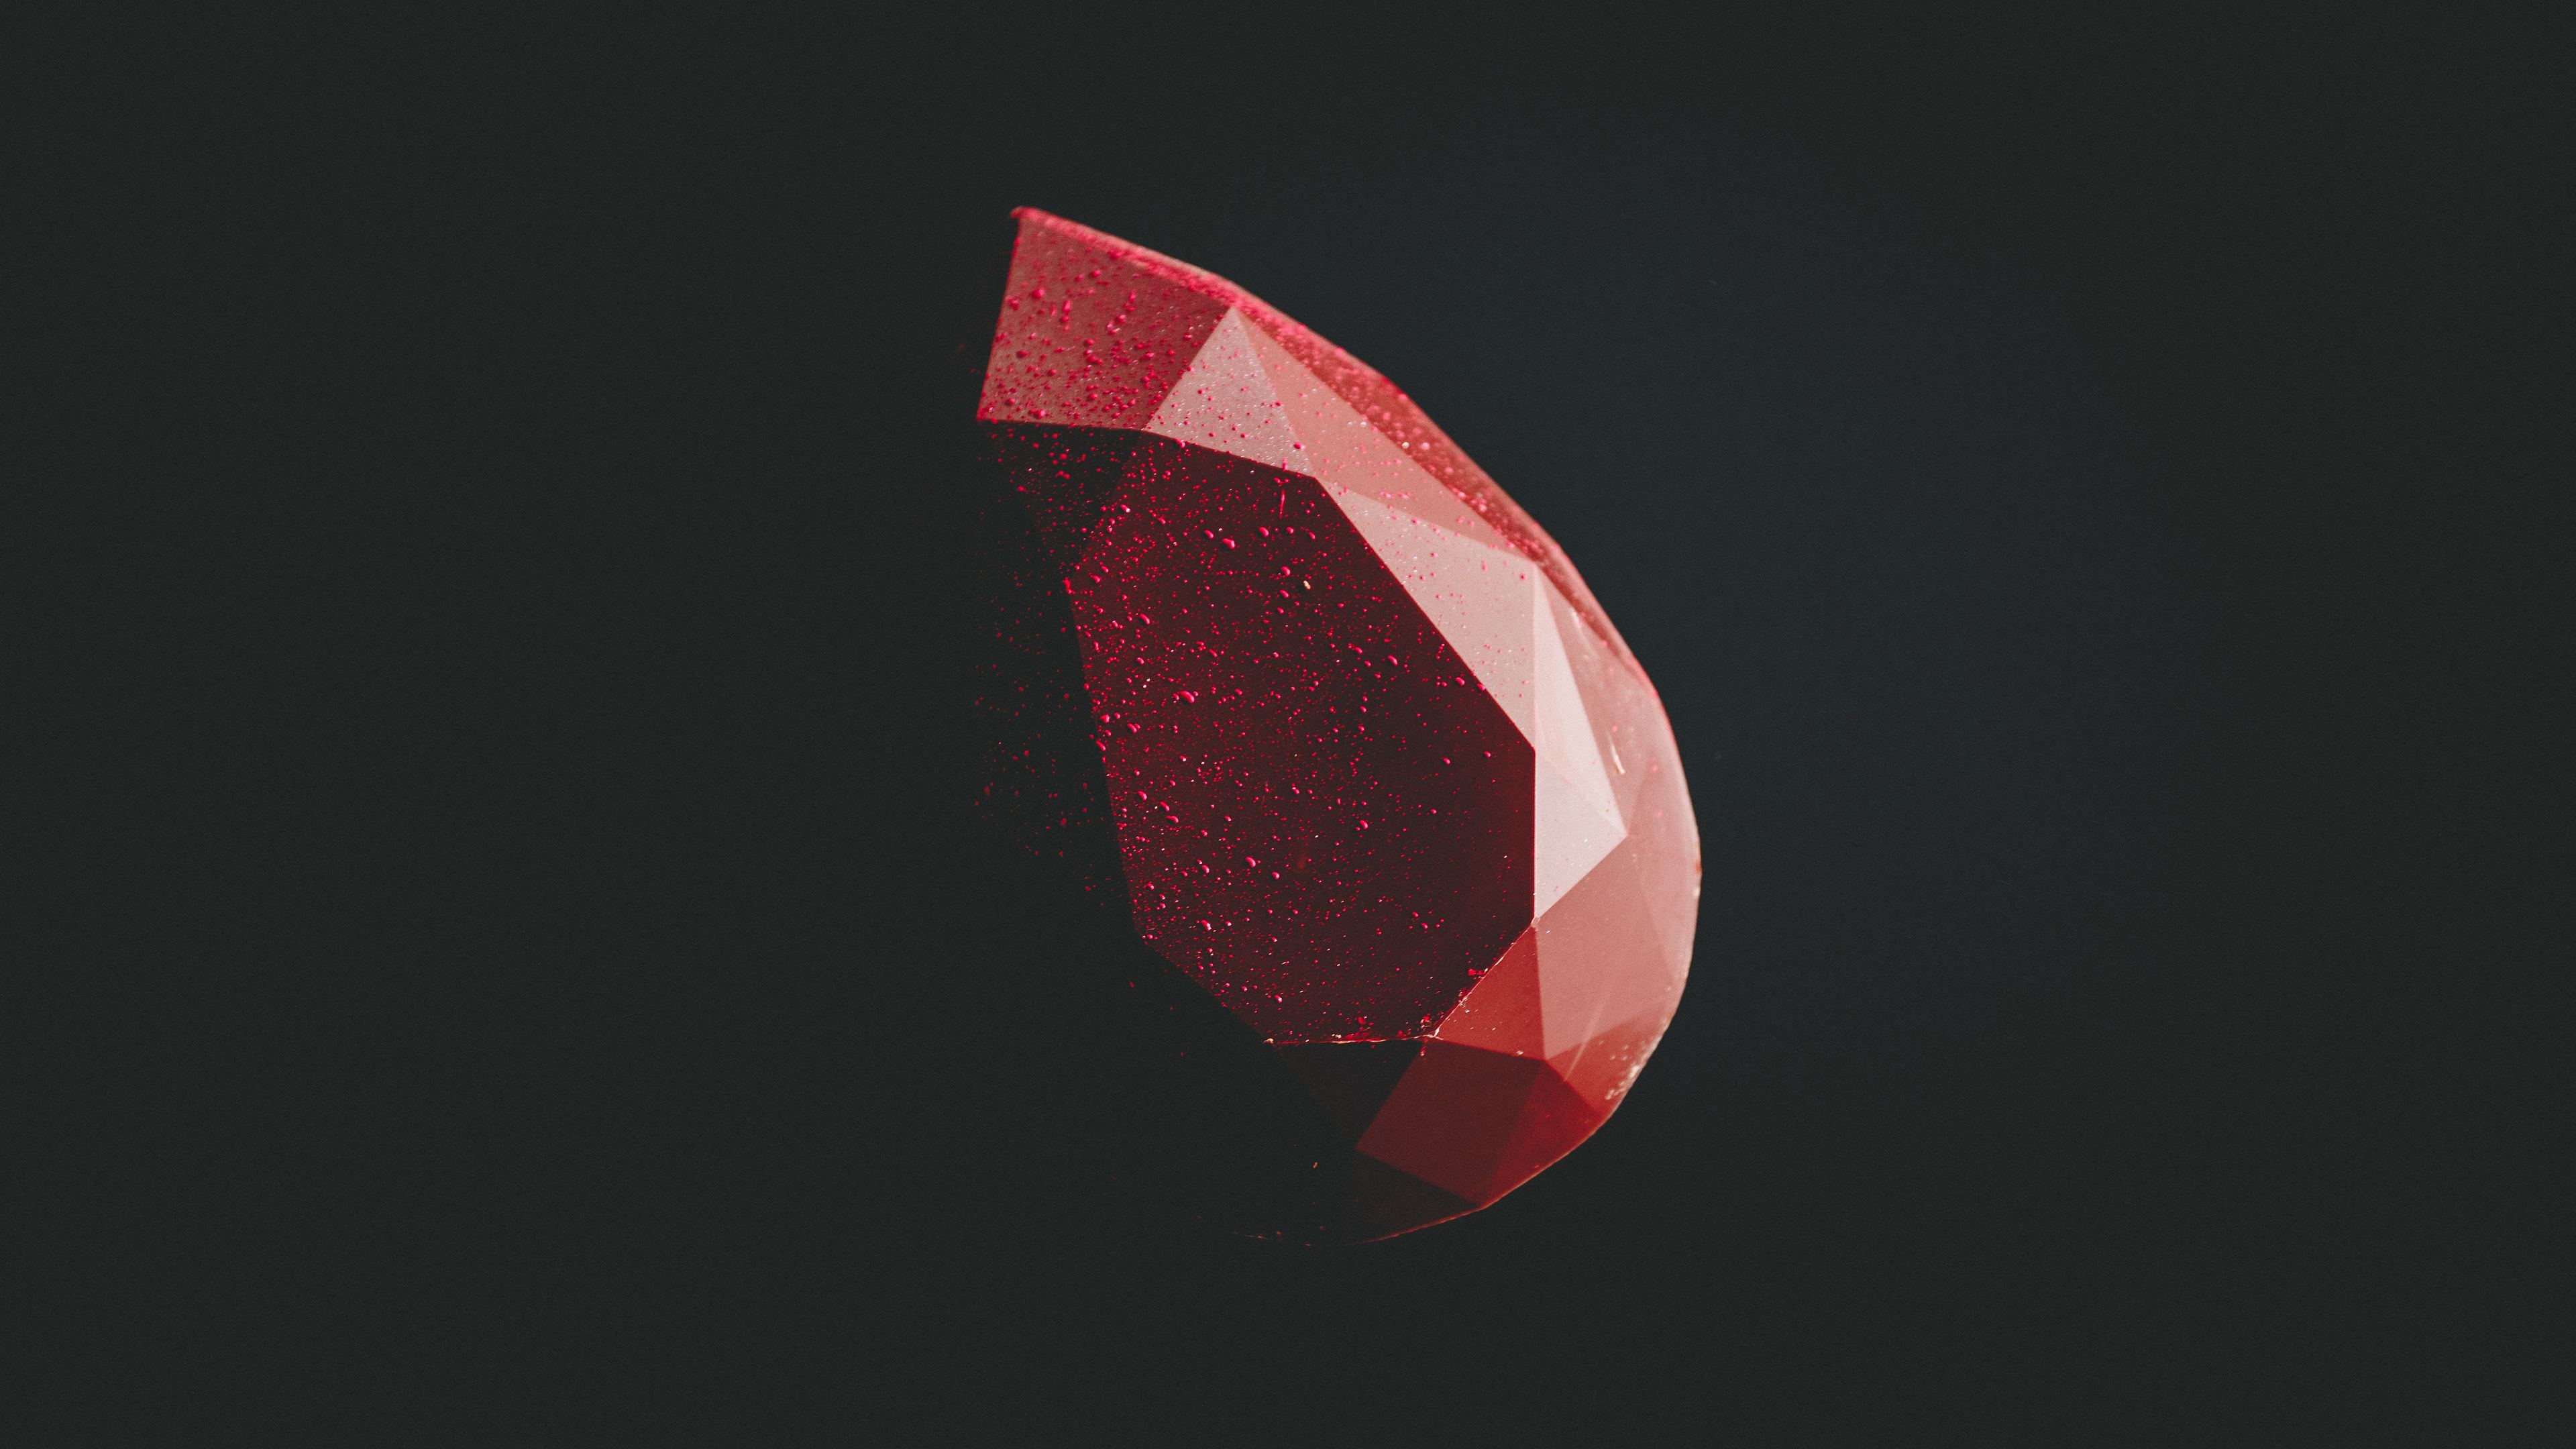 red diamond minimal dark 5k 1539371451 - Red Diamond Minimal Dark 5k - shape wallpapers, red wallpapers, minimalist wallpapers, minimalism wallpapers, hd-wallpapers, diamond wallpapers, dark wallpapers, black wallpapers, 5k wallpapers, 4k-wallpapers